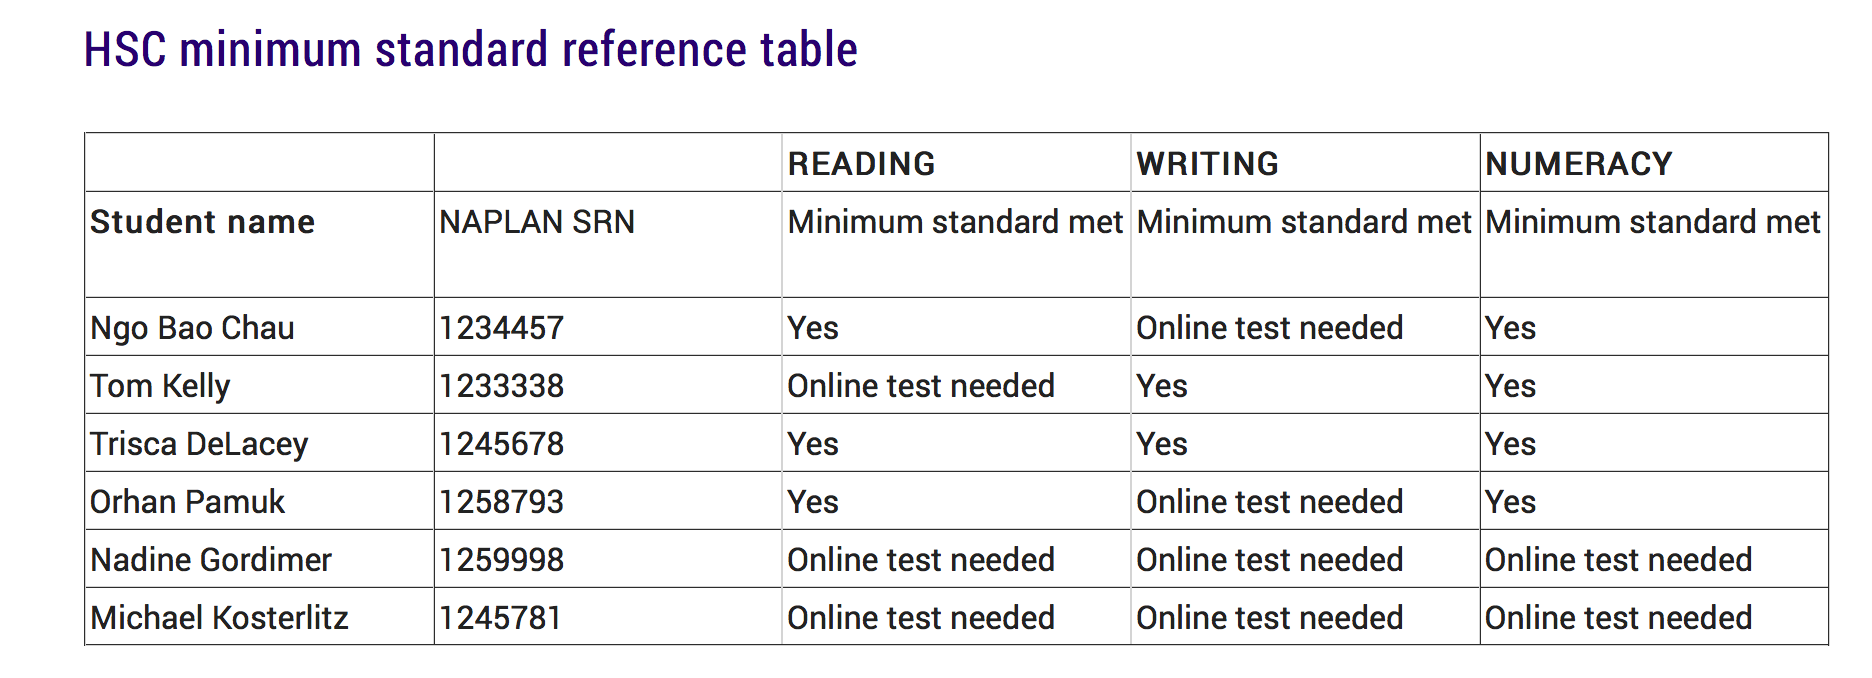 HSC minimum standard reference table